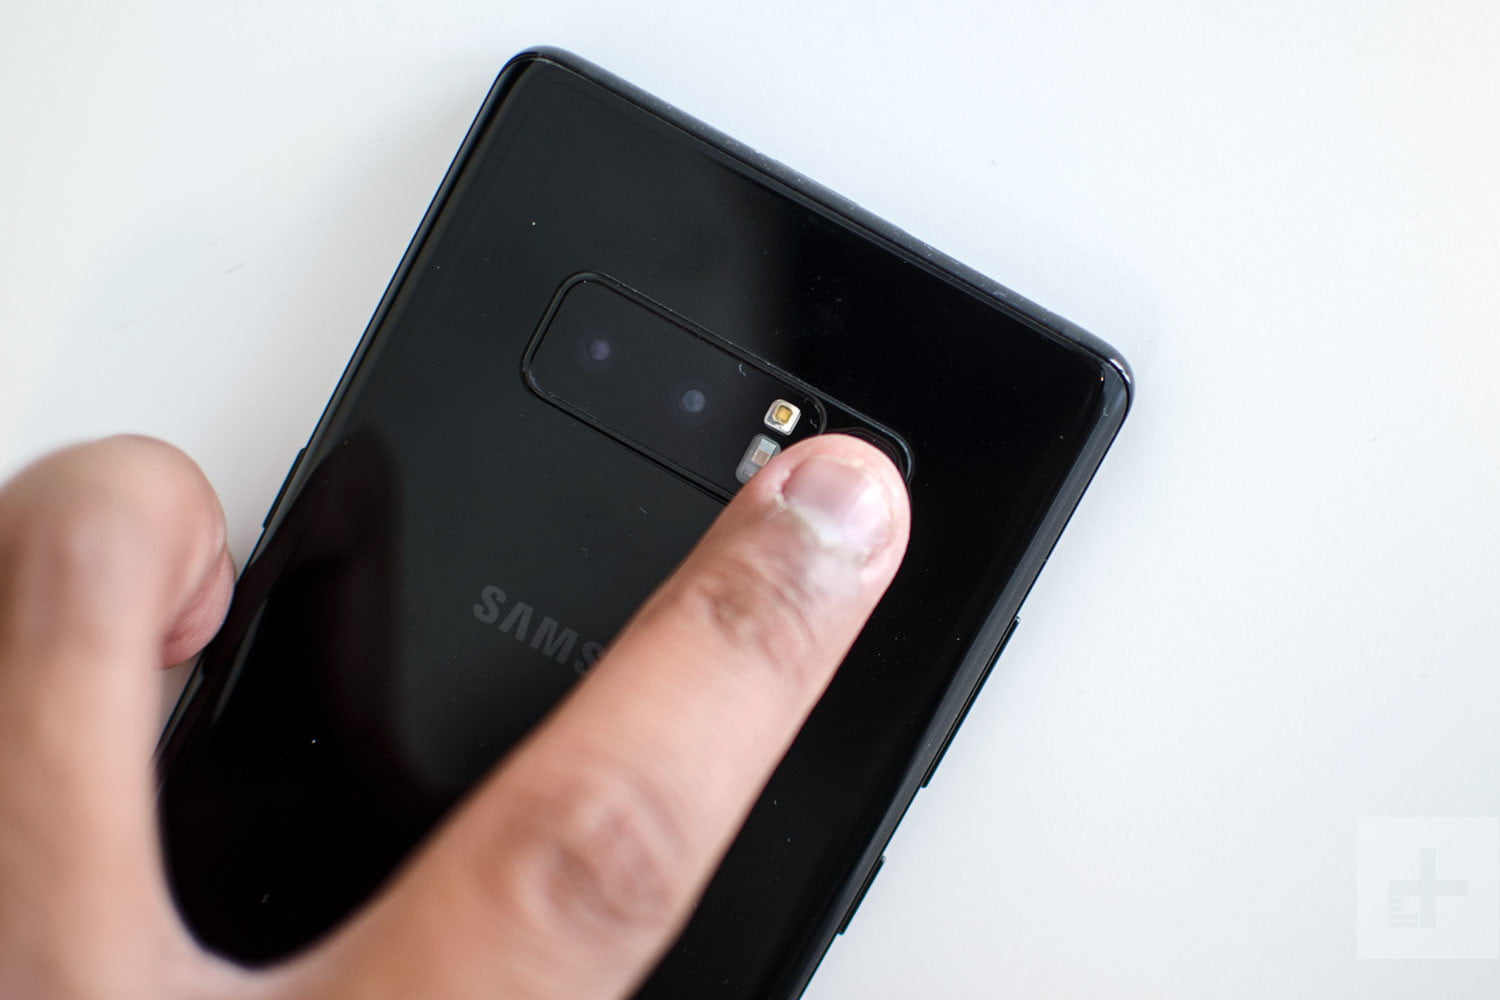 Samsung Galaxy Note 8 Review Fingerprint Scan